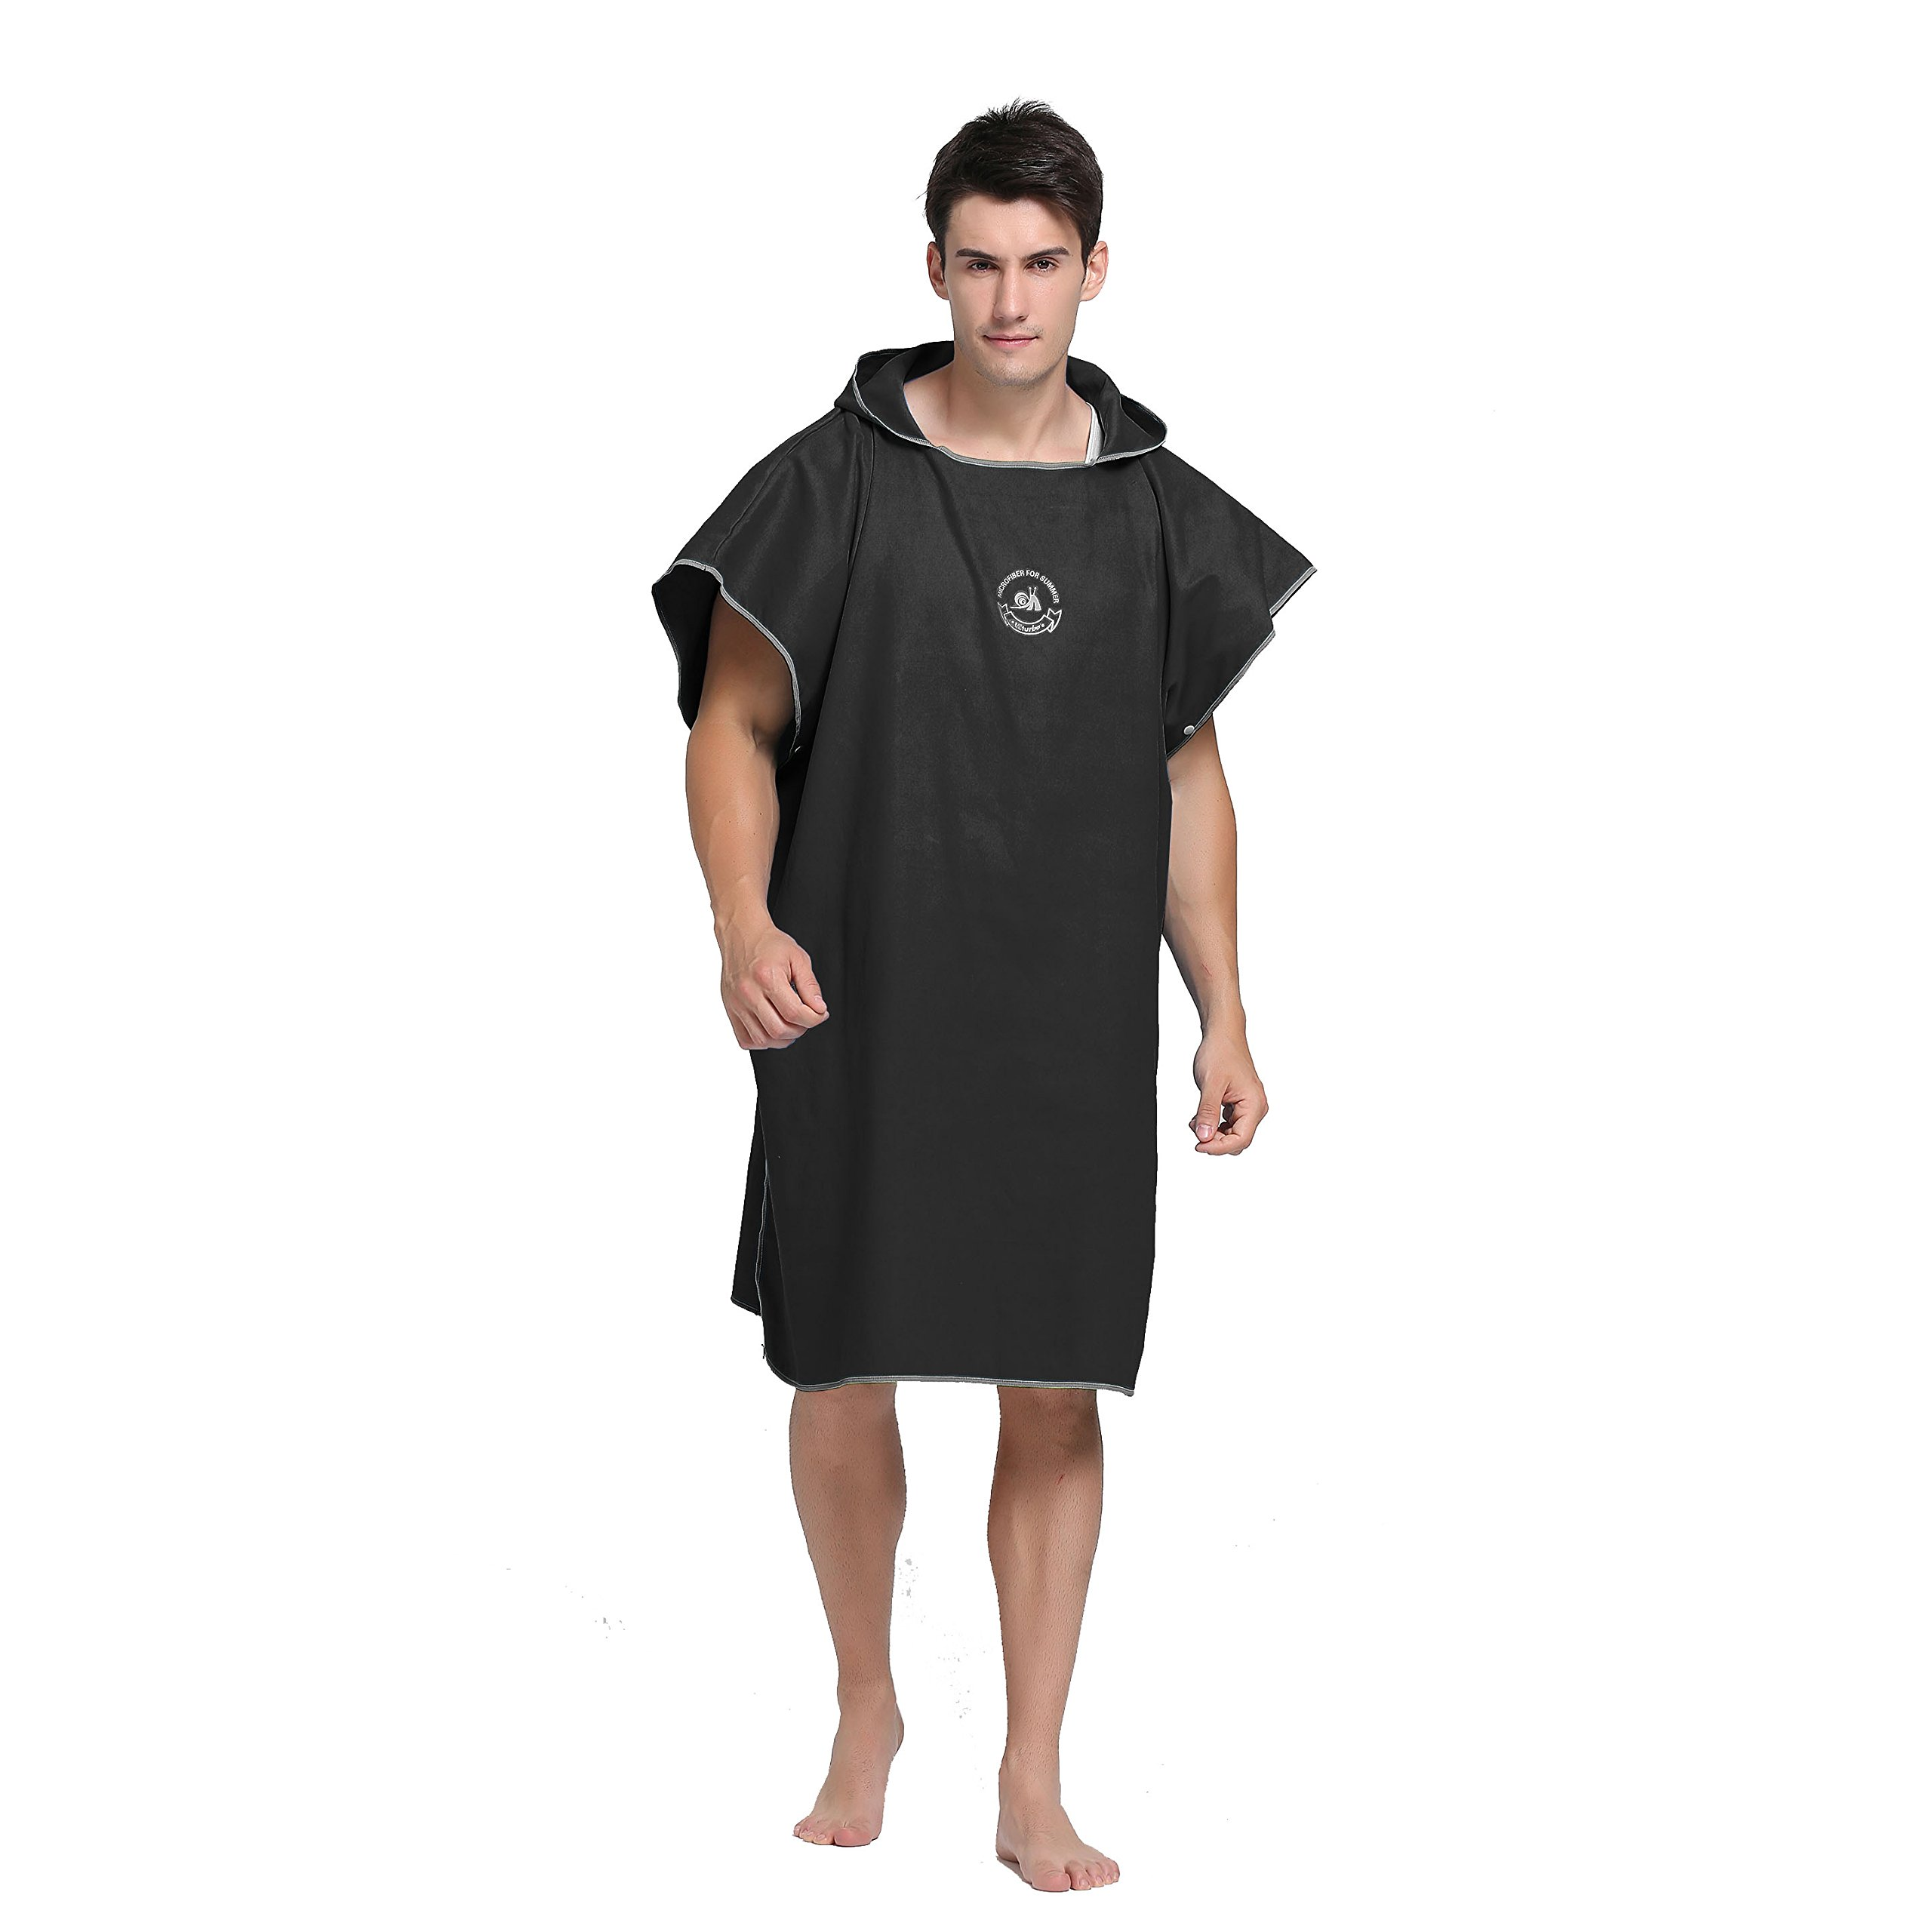 Wetsuit Changing Robe Towel Poncho with Hood Sleeve Pocket for Surfer Swimmer One Size Fit All